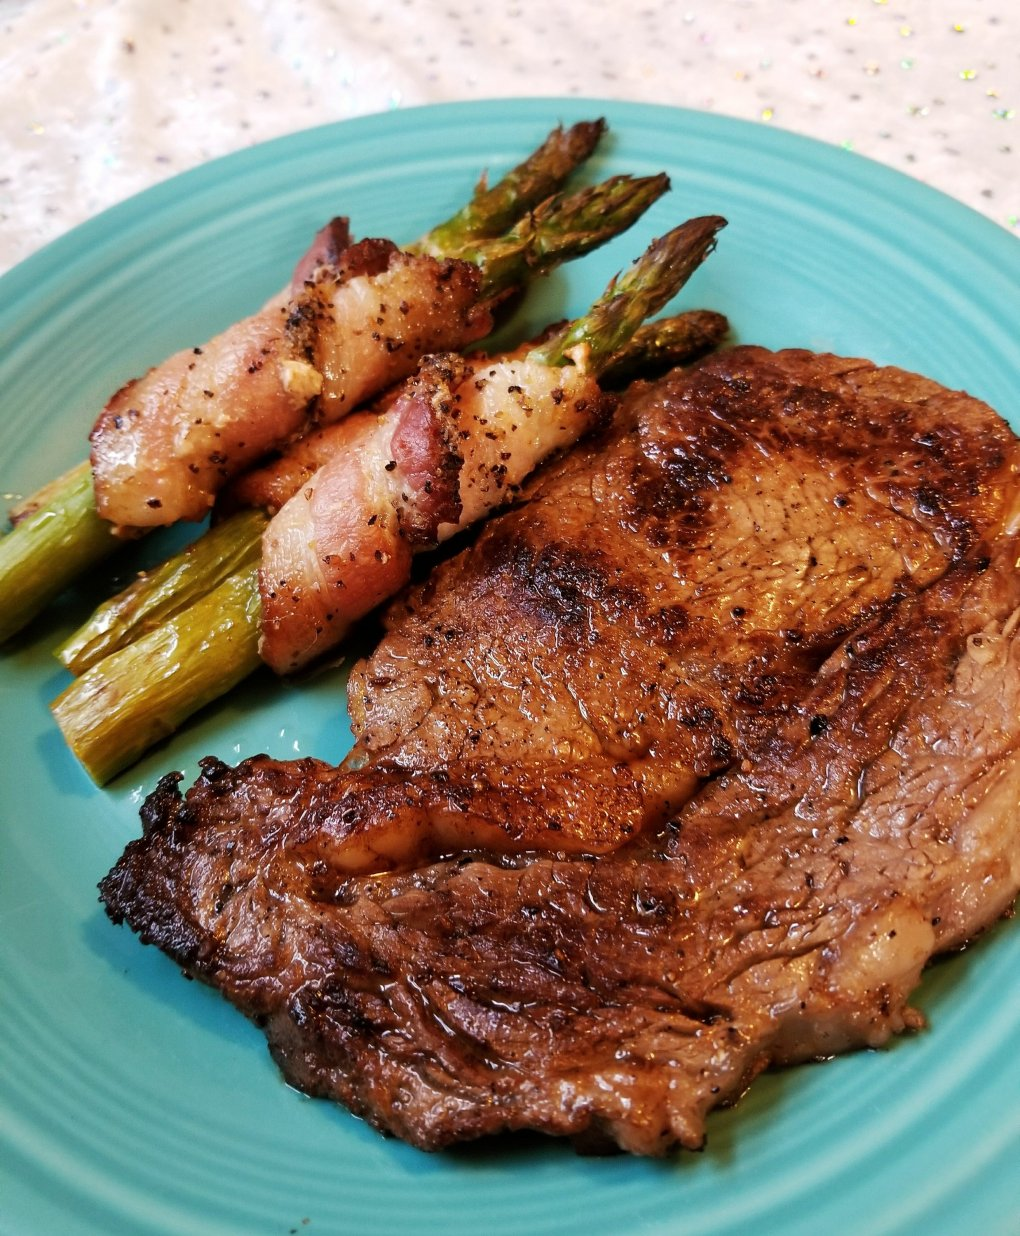 Primal Kitchen Sesame Ginger Ribeye Steak and Bacon-Wrapped Asparagus